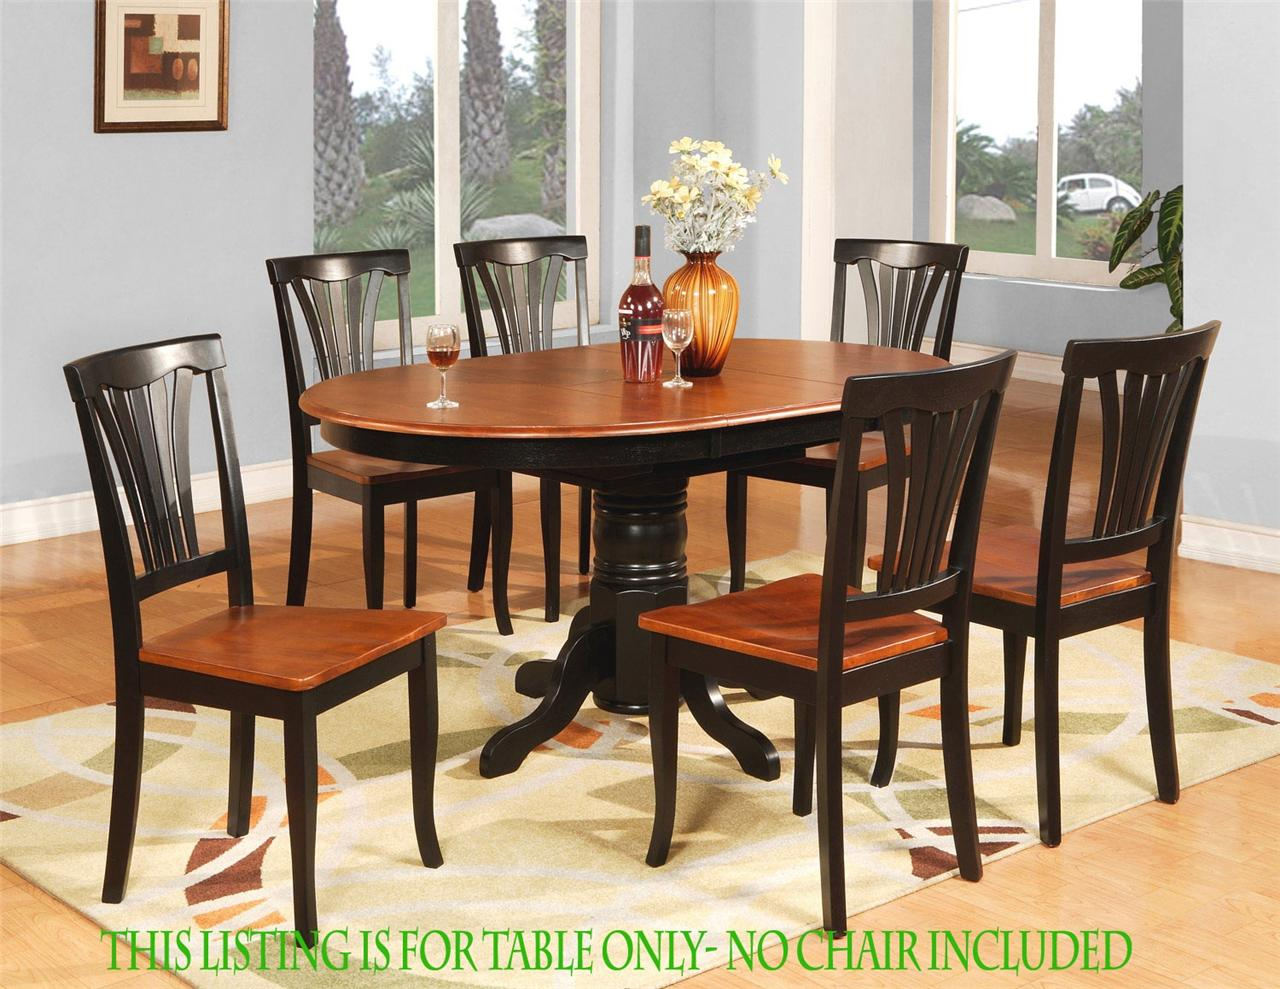 Oval dinette kitchen dining room table only 42 x 60 with for Round kitchen table with leaf